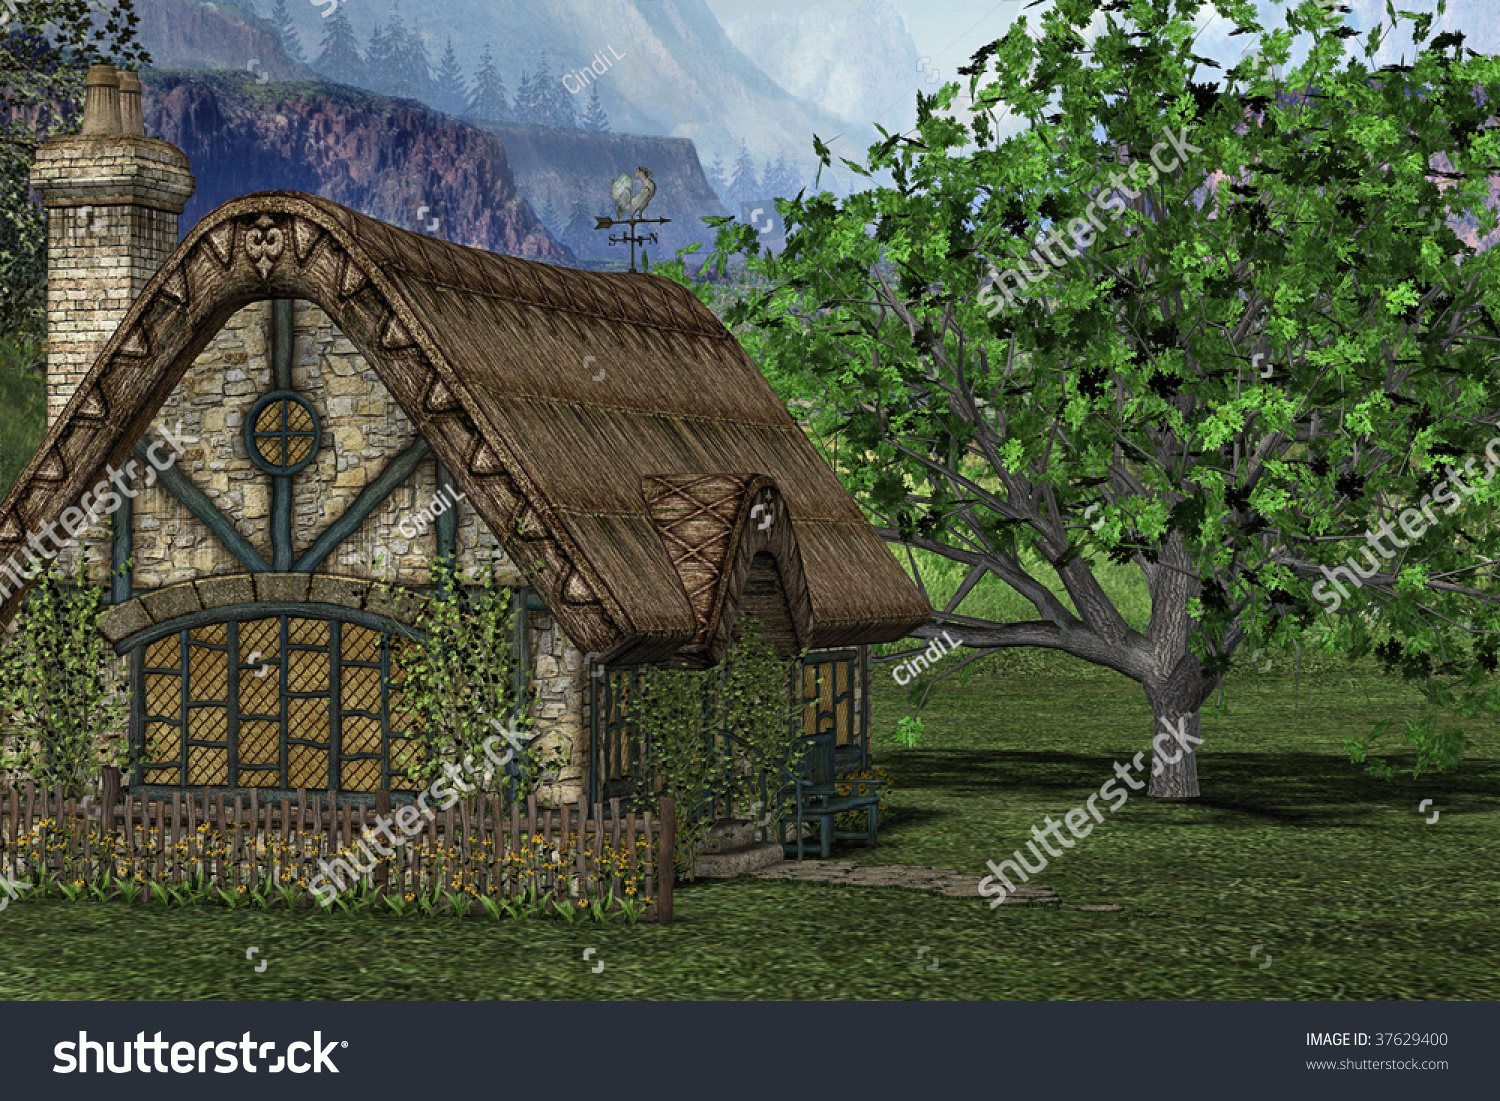 26   Cool medieval cottage in the for Medieval Cottage In The Woods  51ane